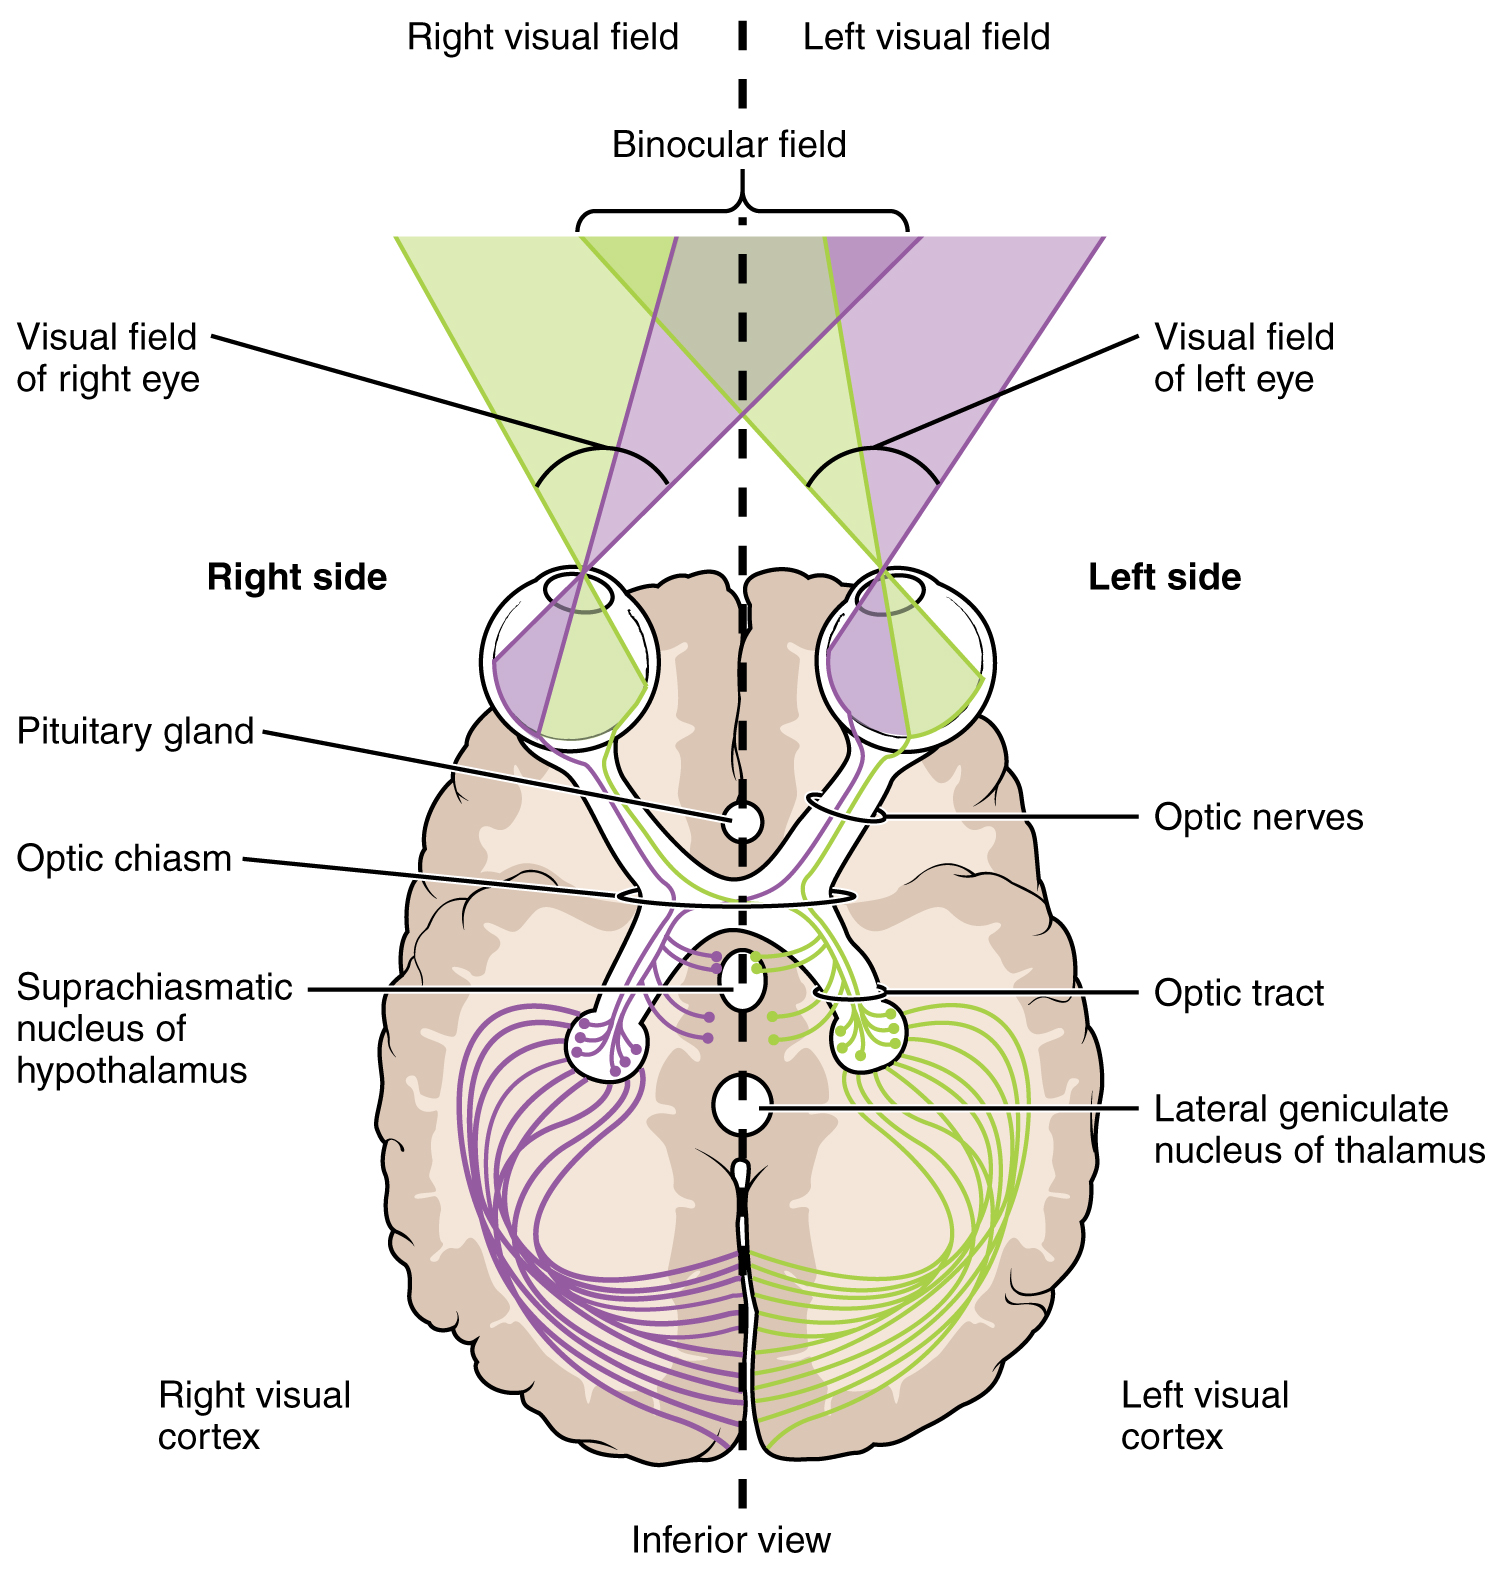 This image shows the right and left visual fields in the brain. It describes how the optical fields map to different sides of the brain.